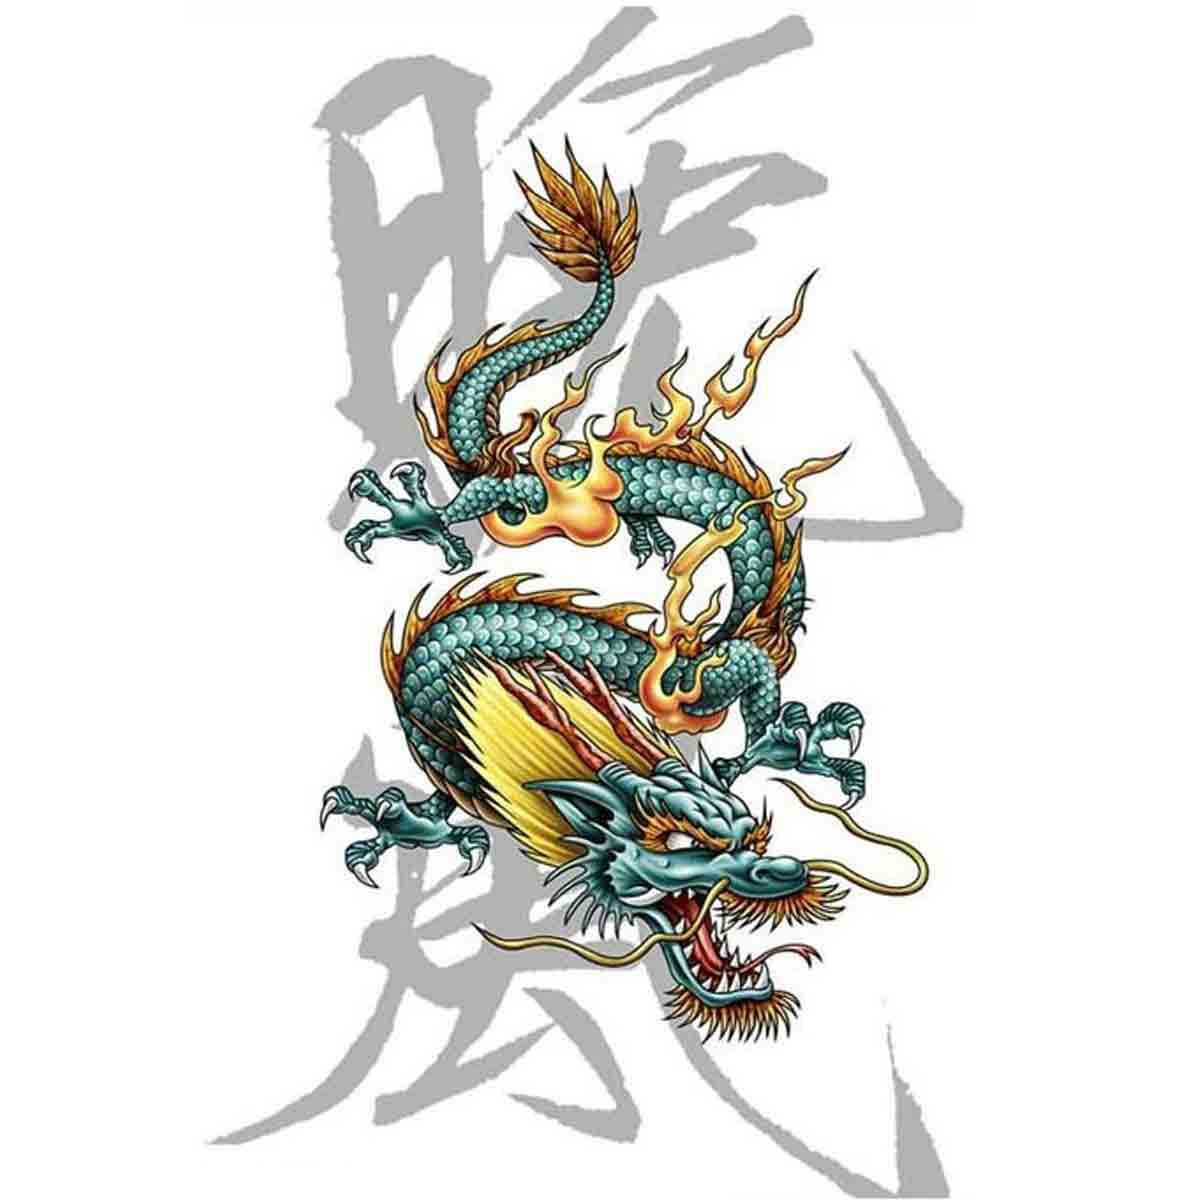 tatoo temporaire dragon lettres chinoises. Black Bedroom Furniture Sets. Home Design Ideas